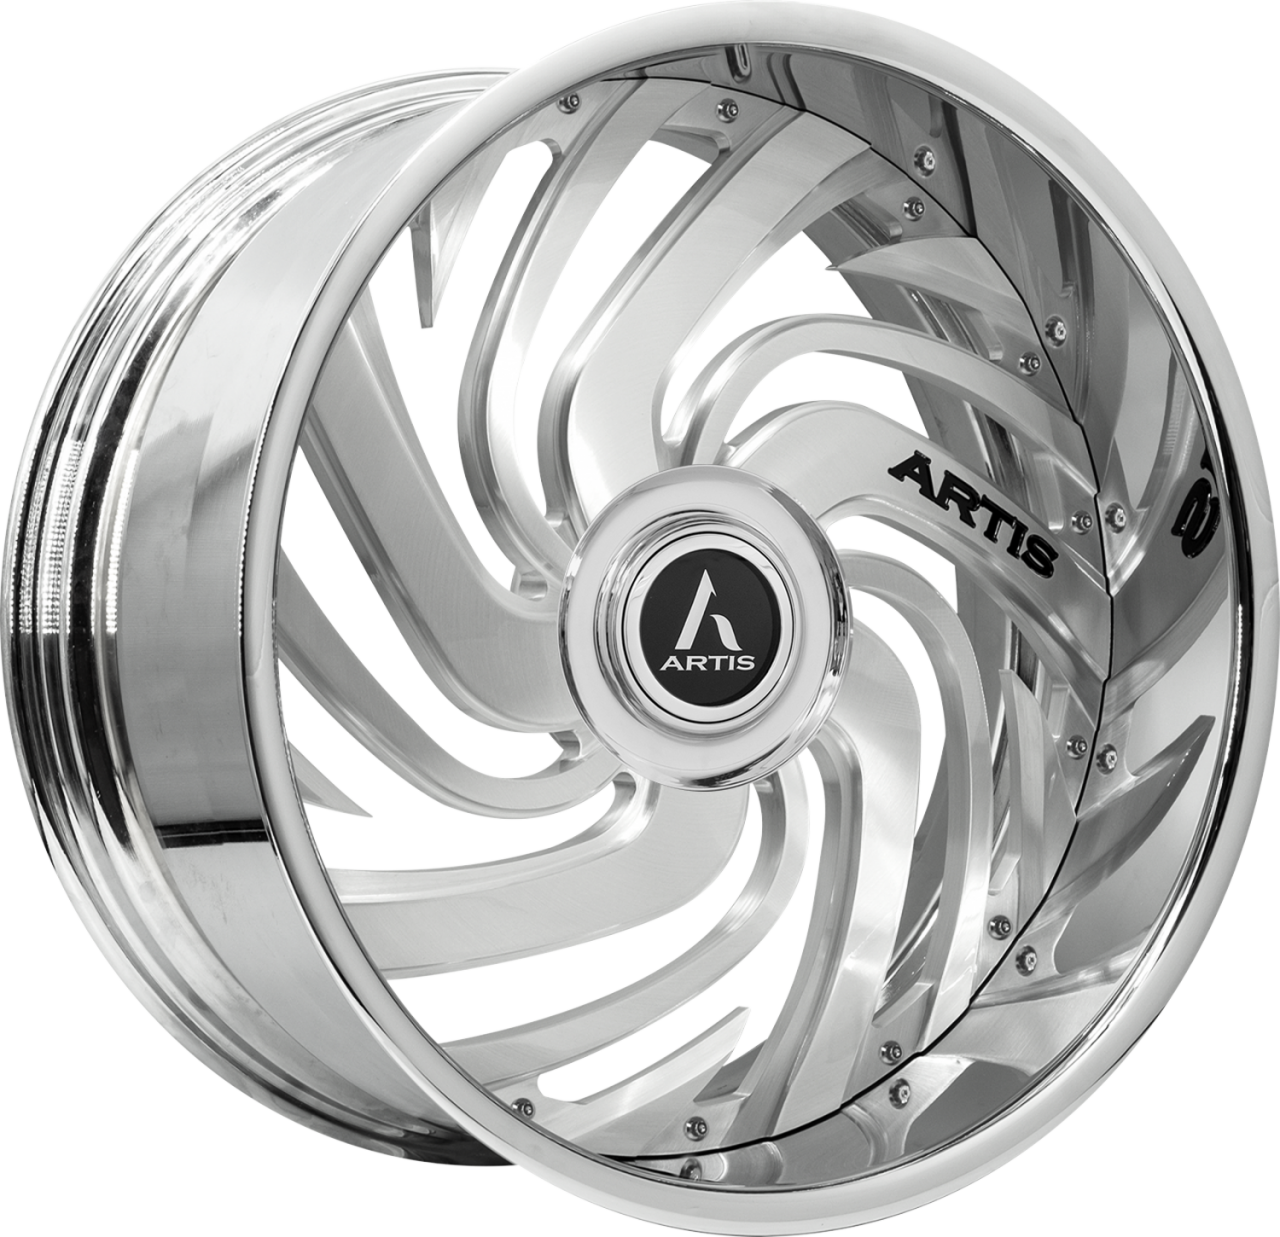 Artis Forged Fillmore wheel with Brushed with XL Floater Cap finish